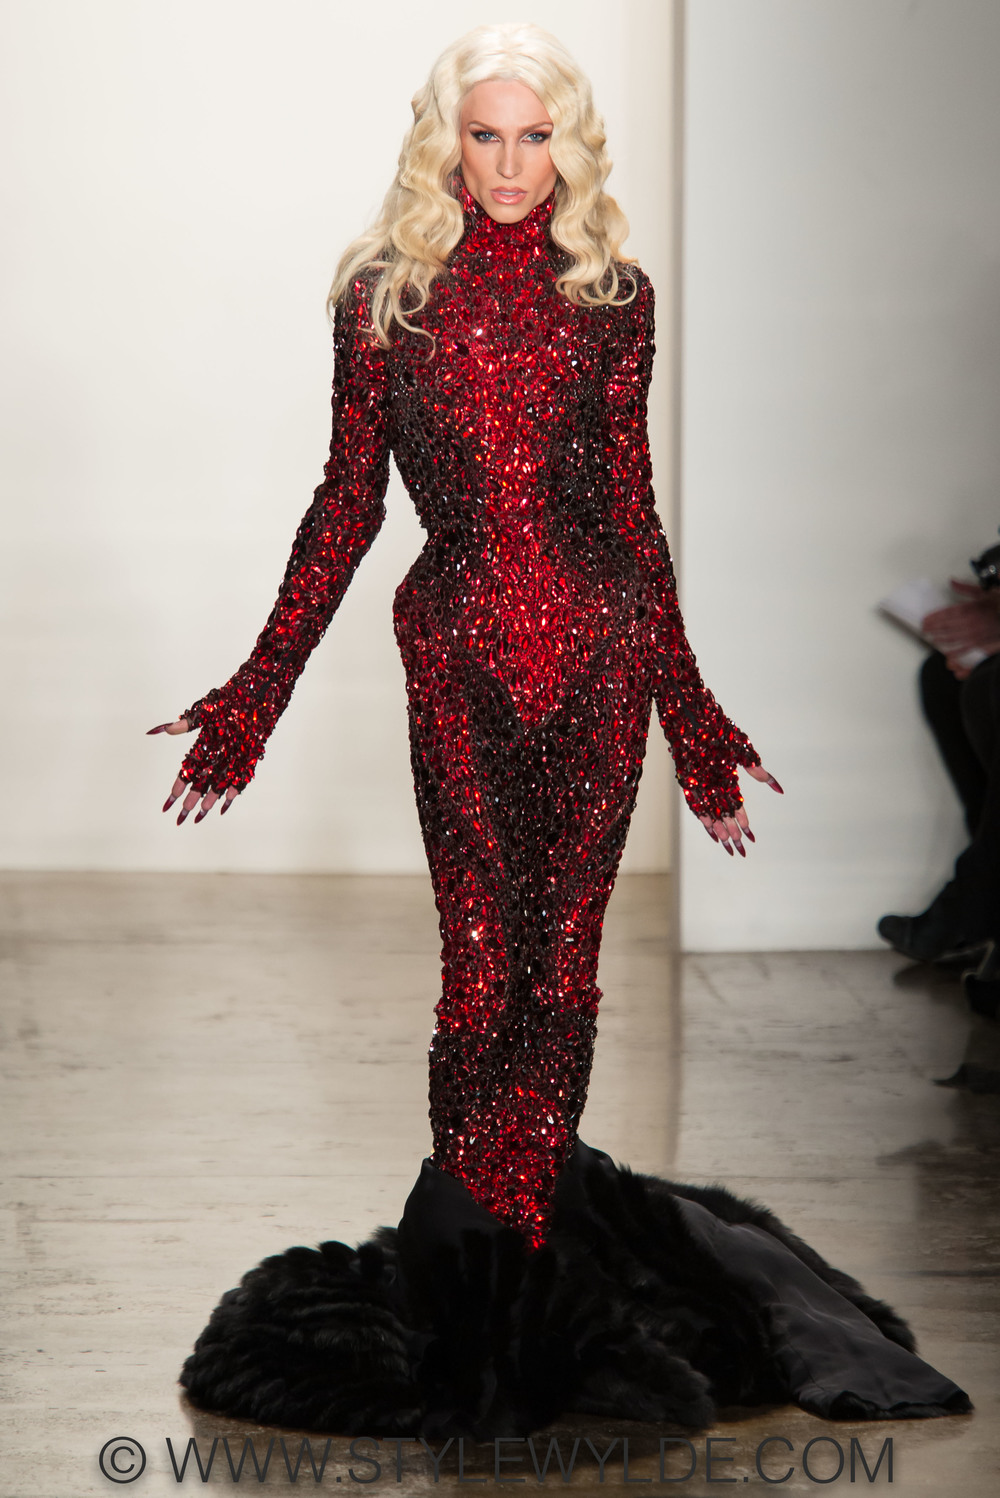 stylewylde_The_Blonds_FW_2013-5.jpg